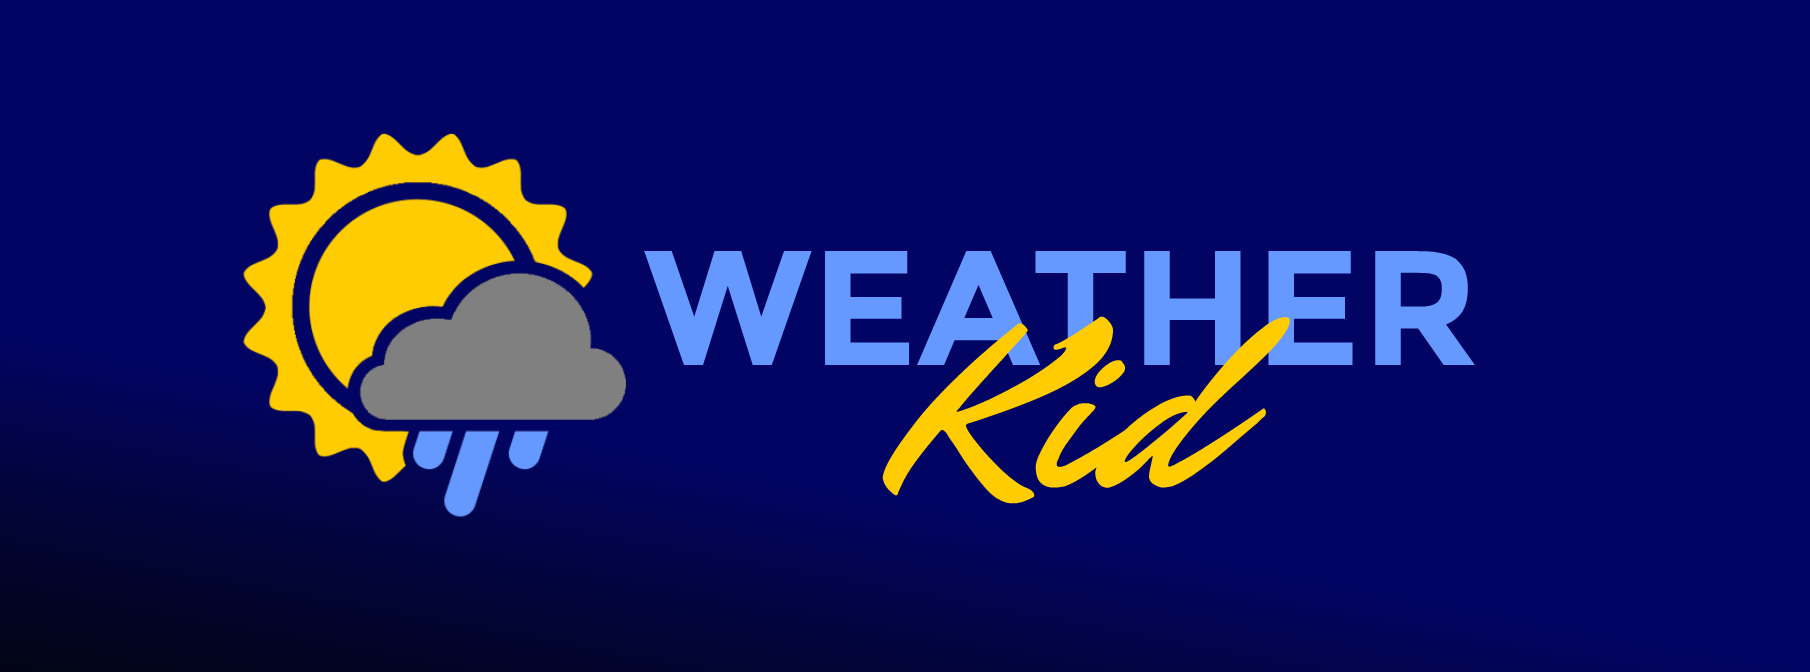 Feature: https://www.hot1055fm.com/weather-kid/